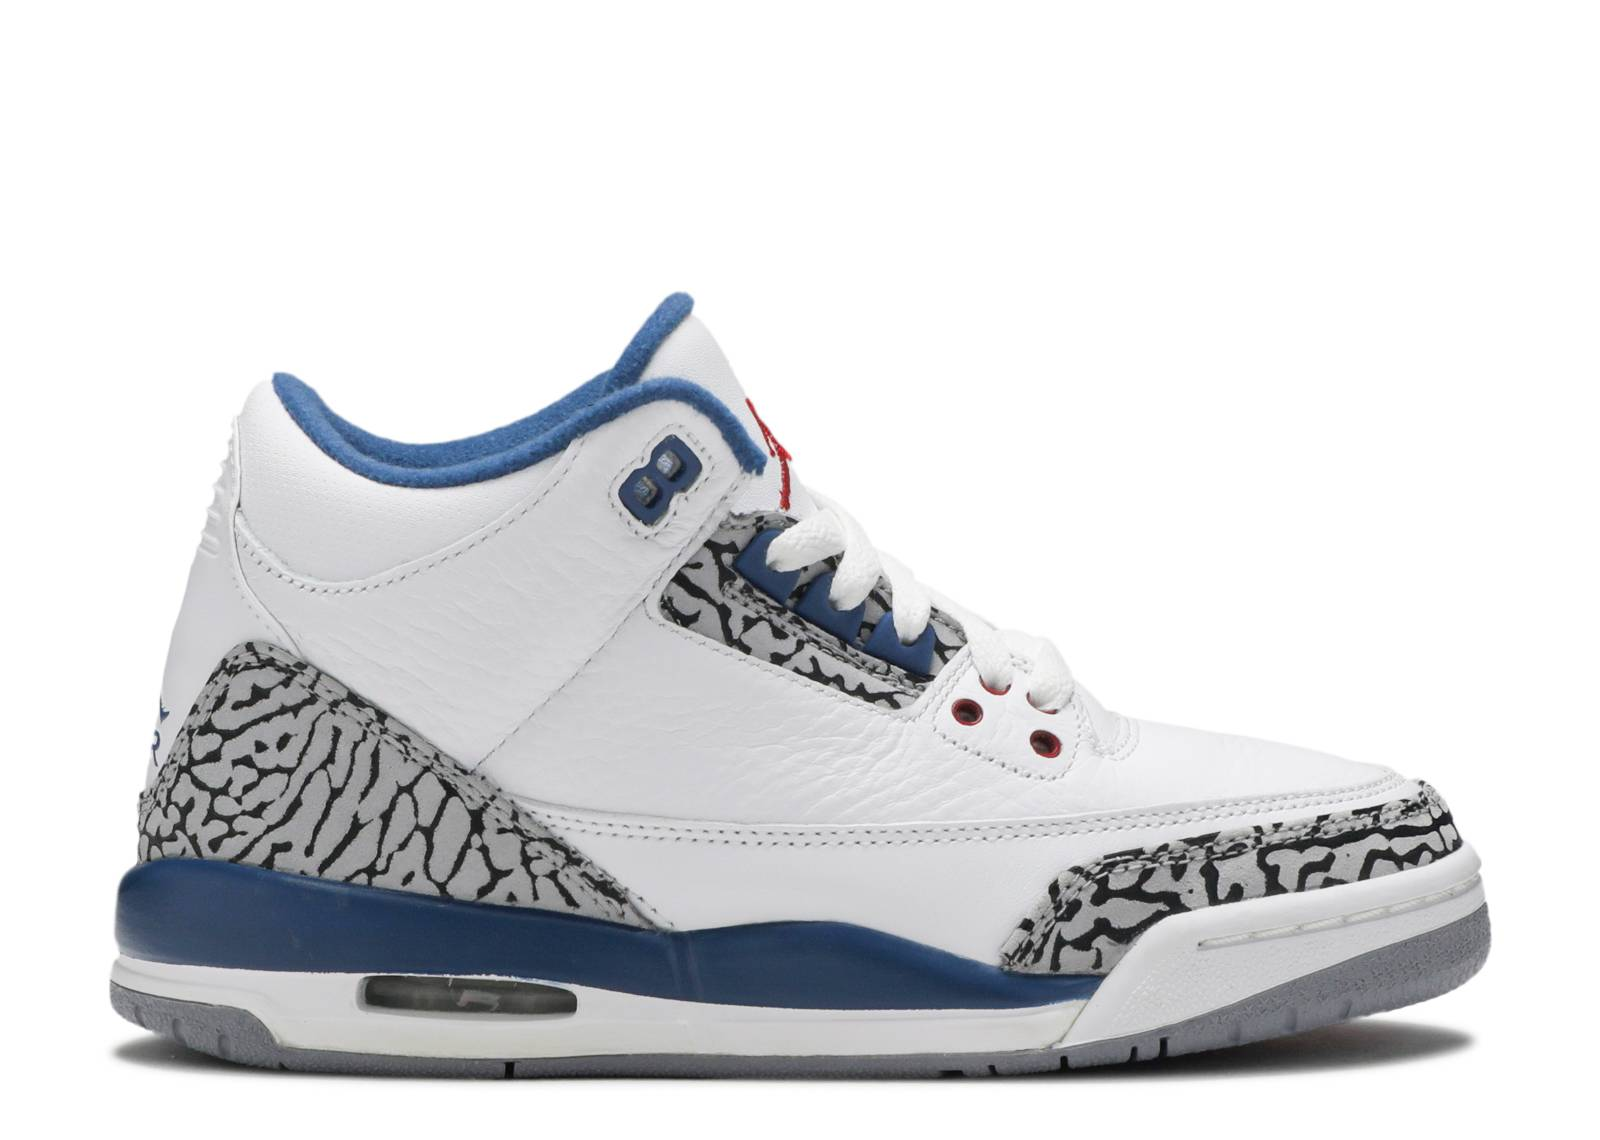 air jordan 3 retro gs true blue 2011 release air. Black Bedroom Furniture Sets. Home Design Ideas